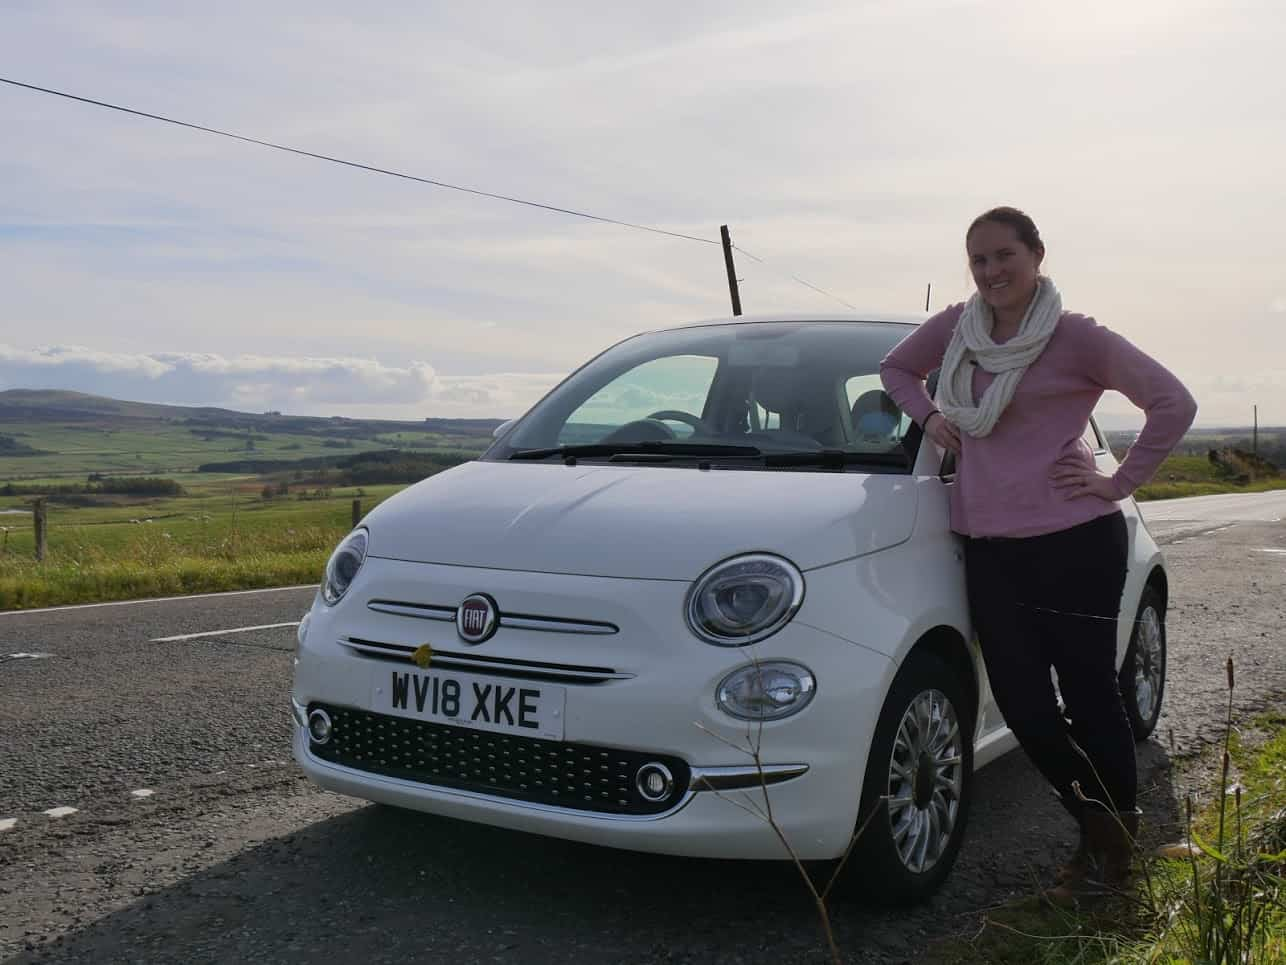 Kalyn leaning on a white car with green fields behind